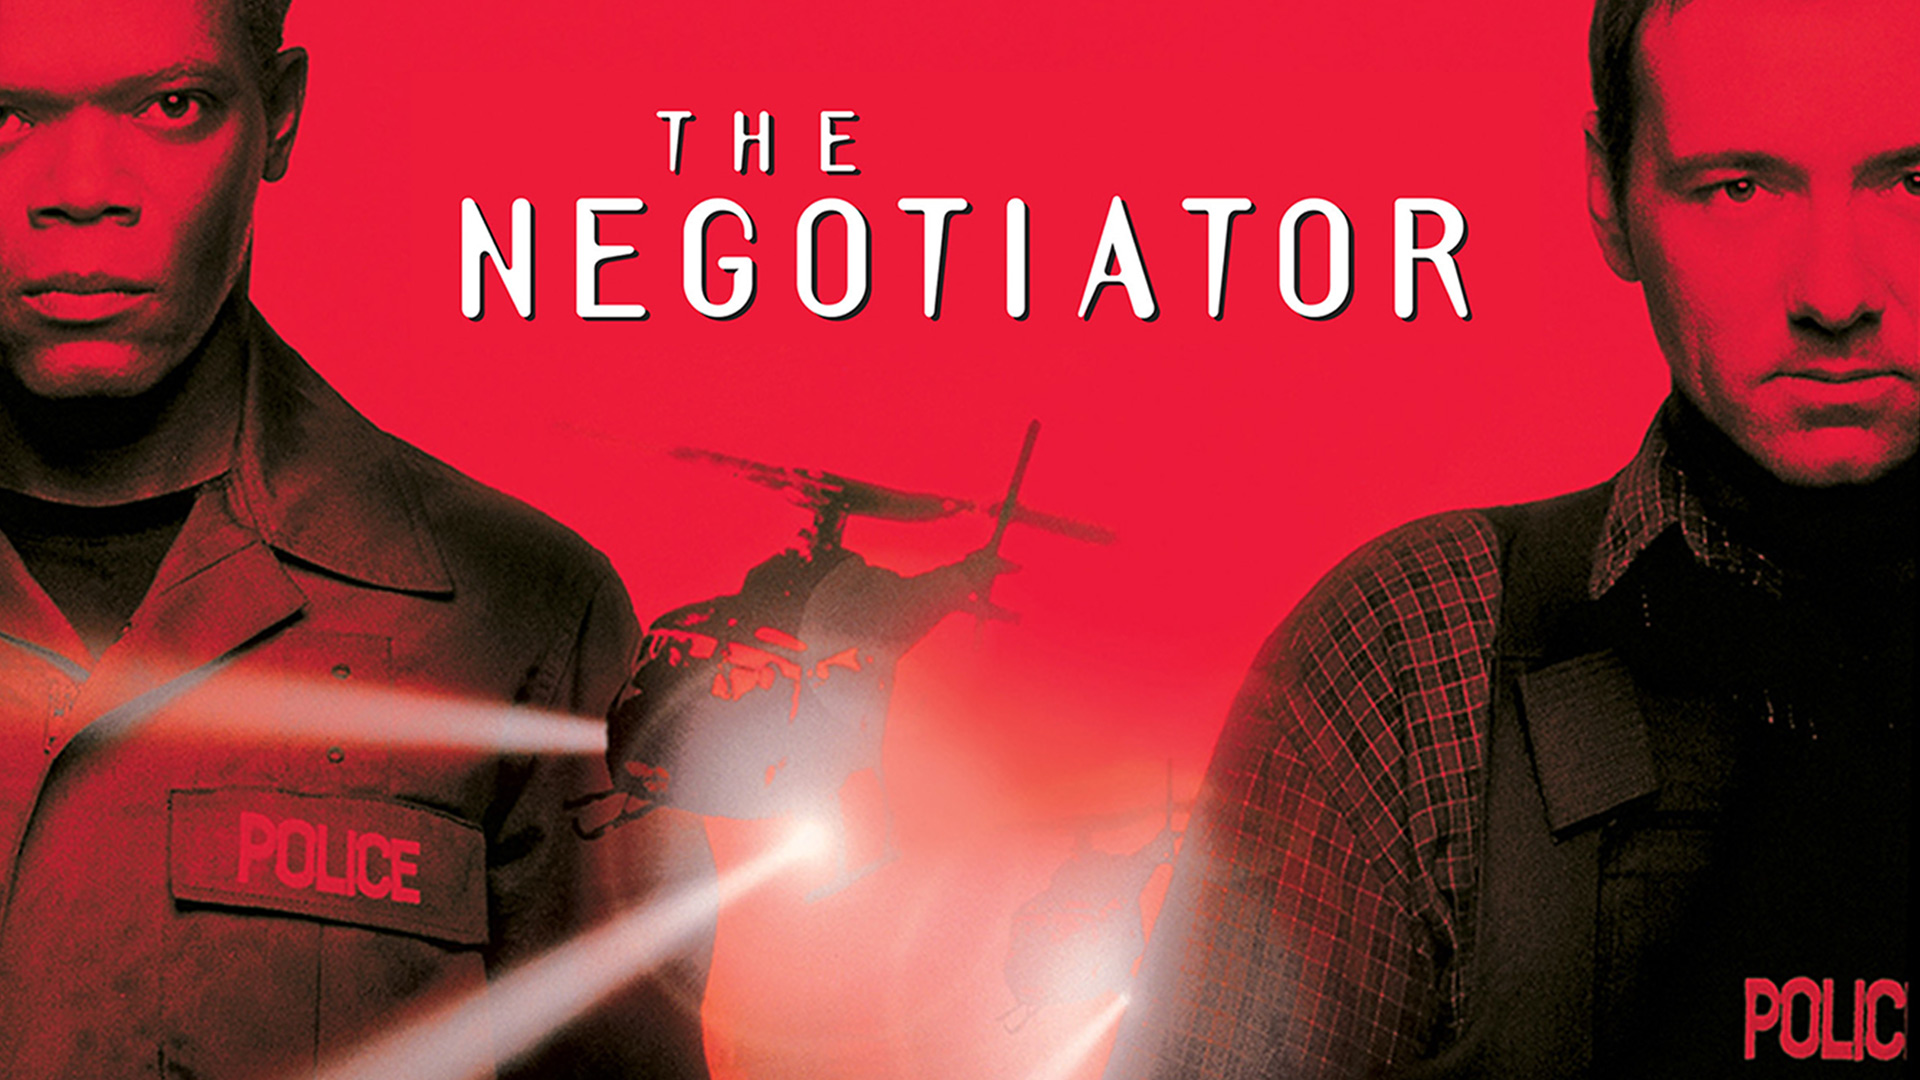 The Negotiator (字幕版)